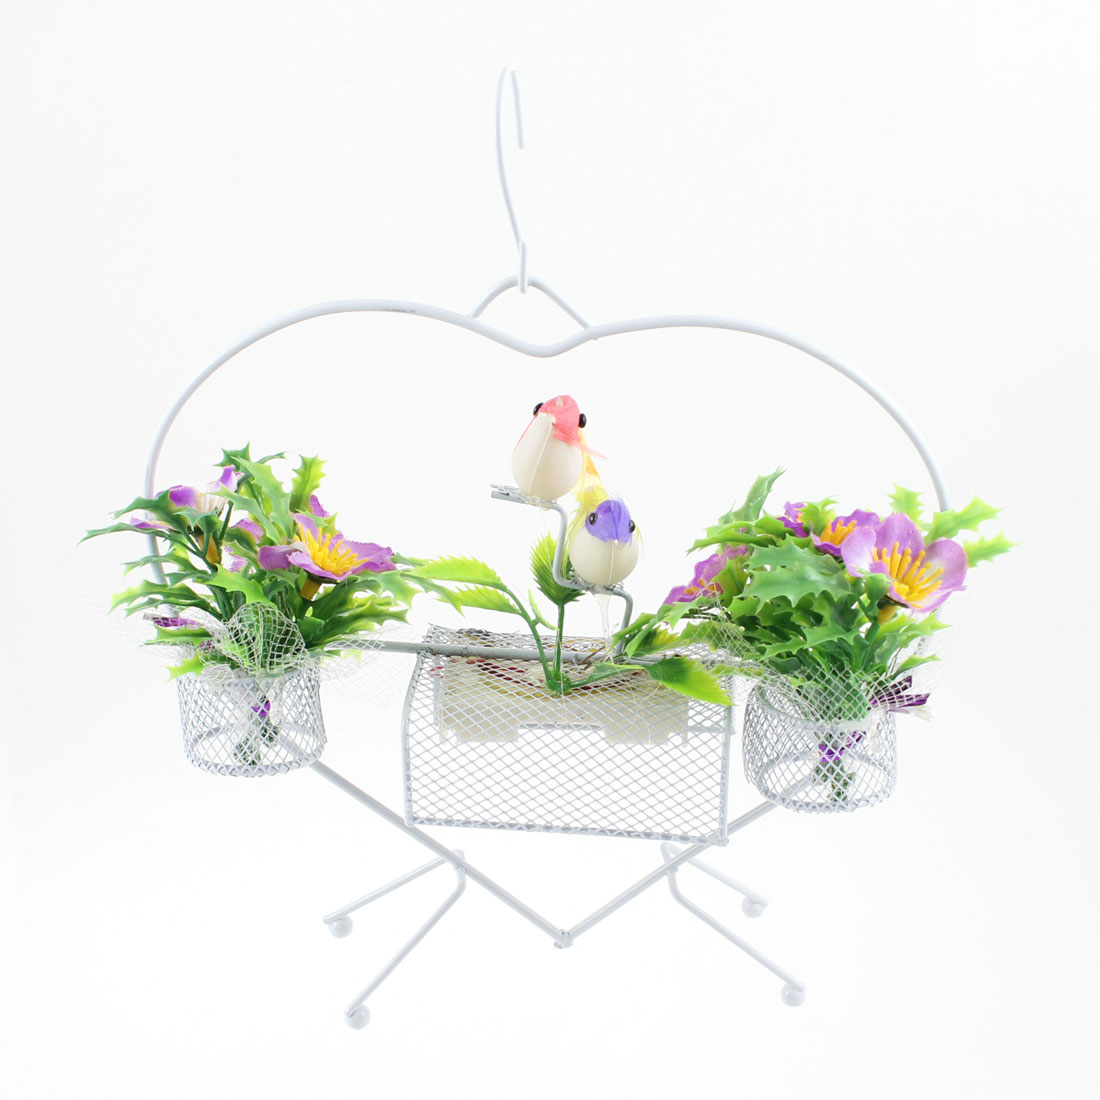 Colorful Birds Decor White Heart Shape Frame Sound Flower Basket Ornament w Hook